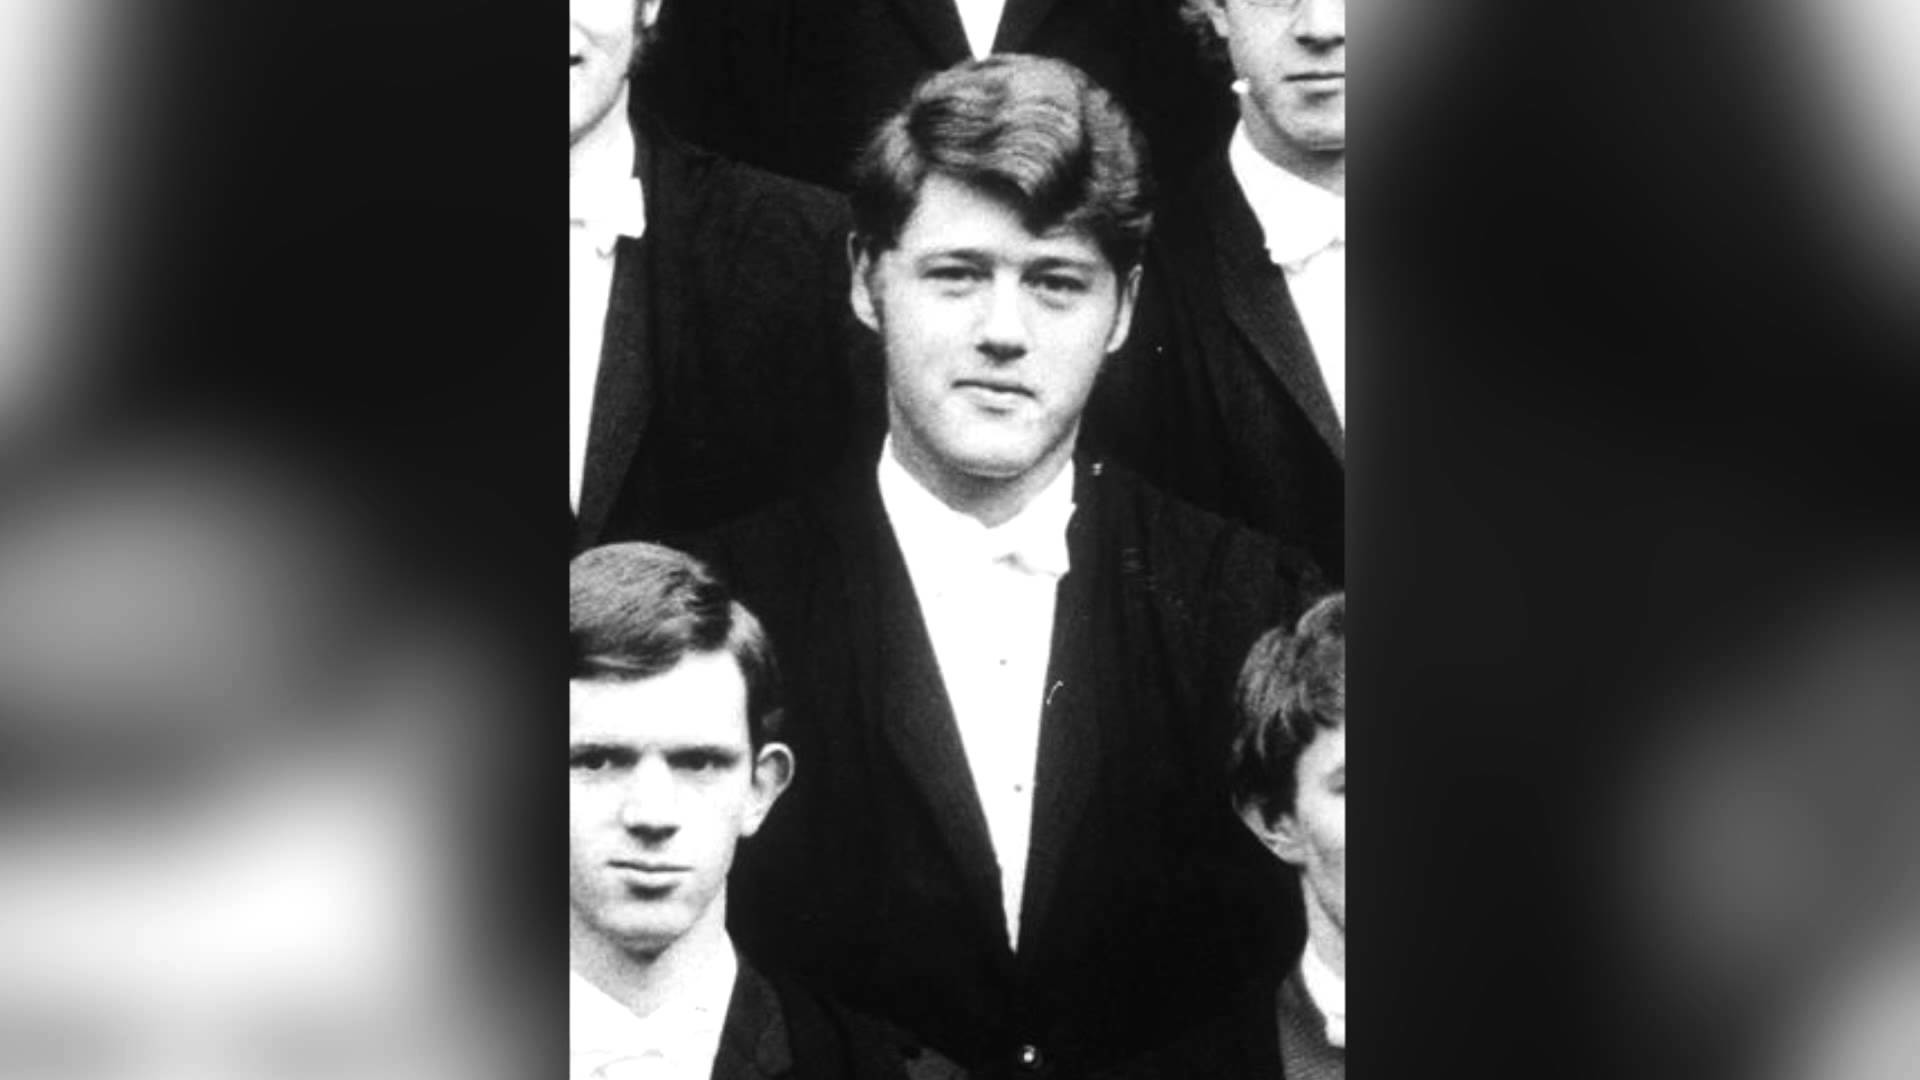 Bill Clinton's Troubling Past